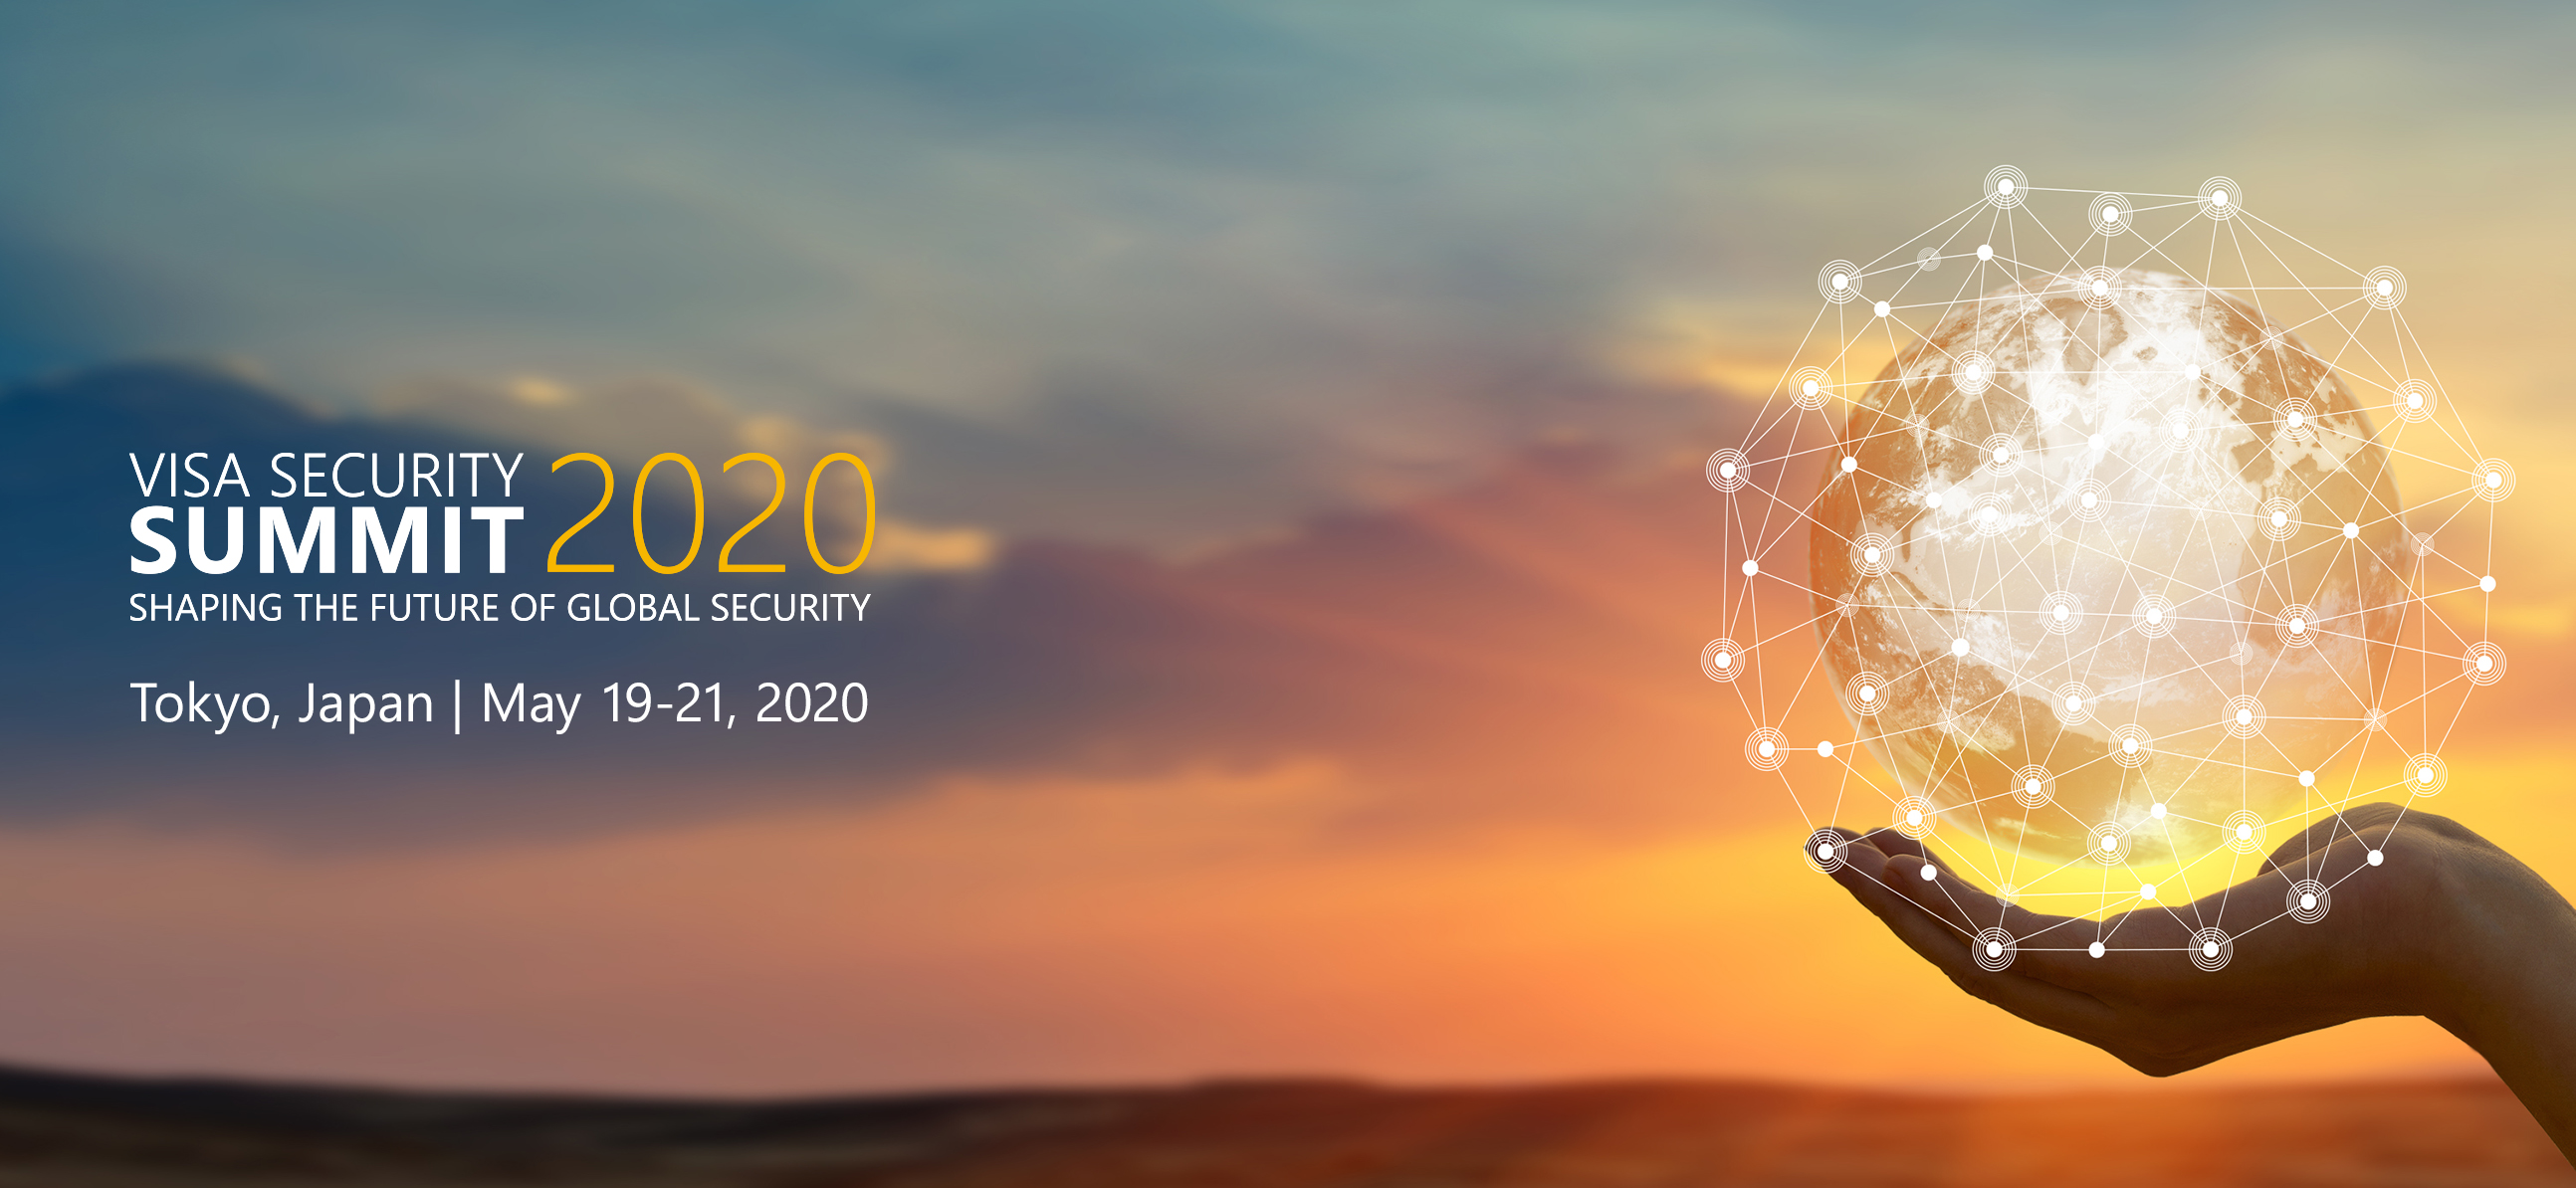 Asia Pacific Visa Security Summit 2020